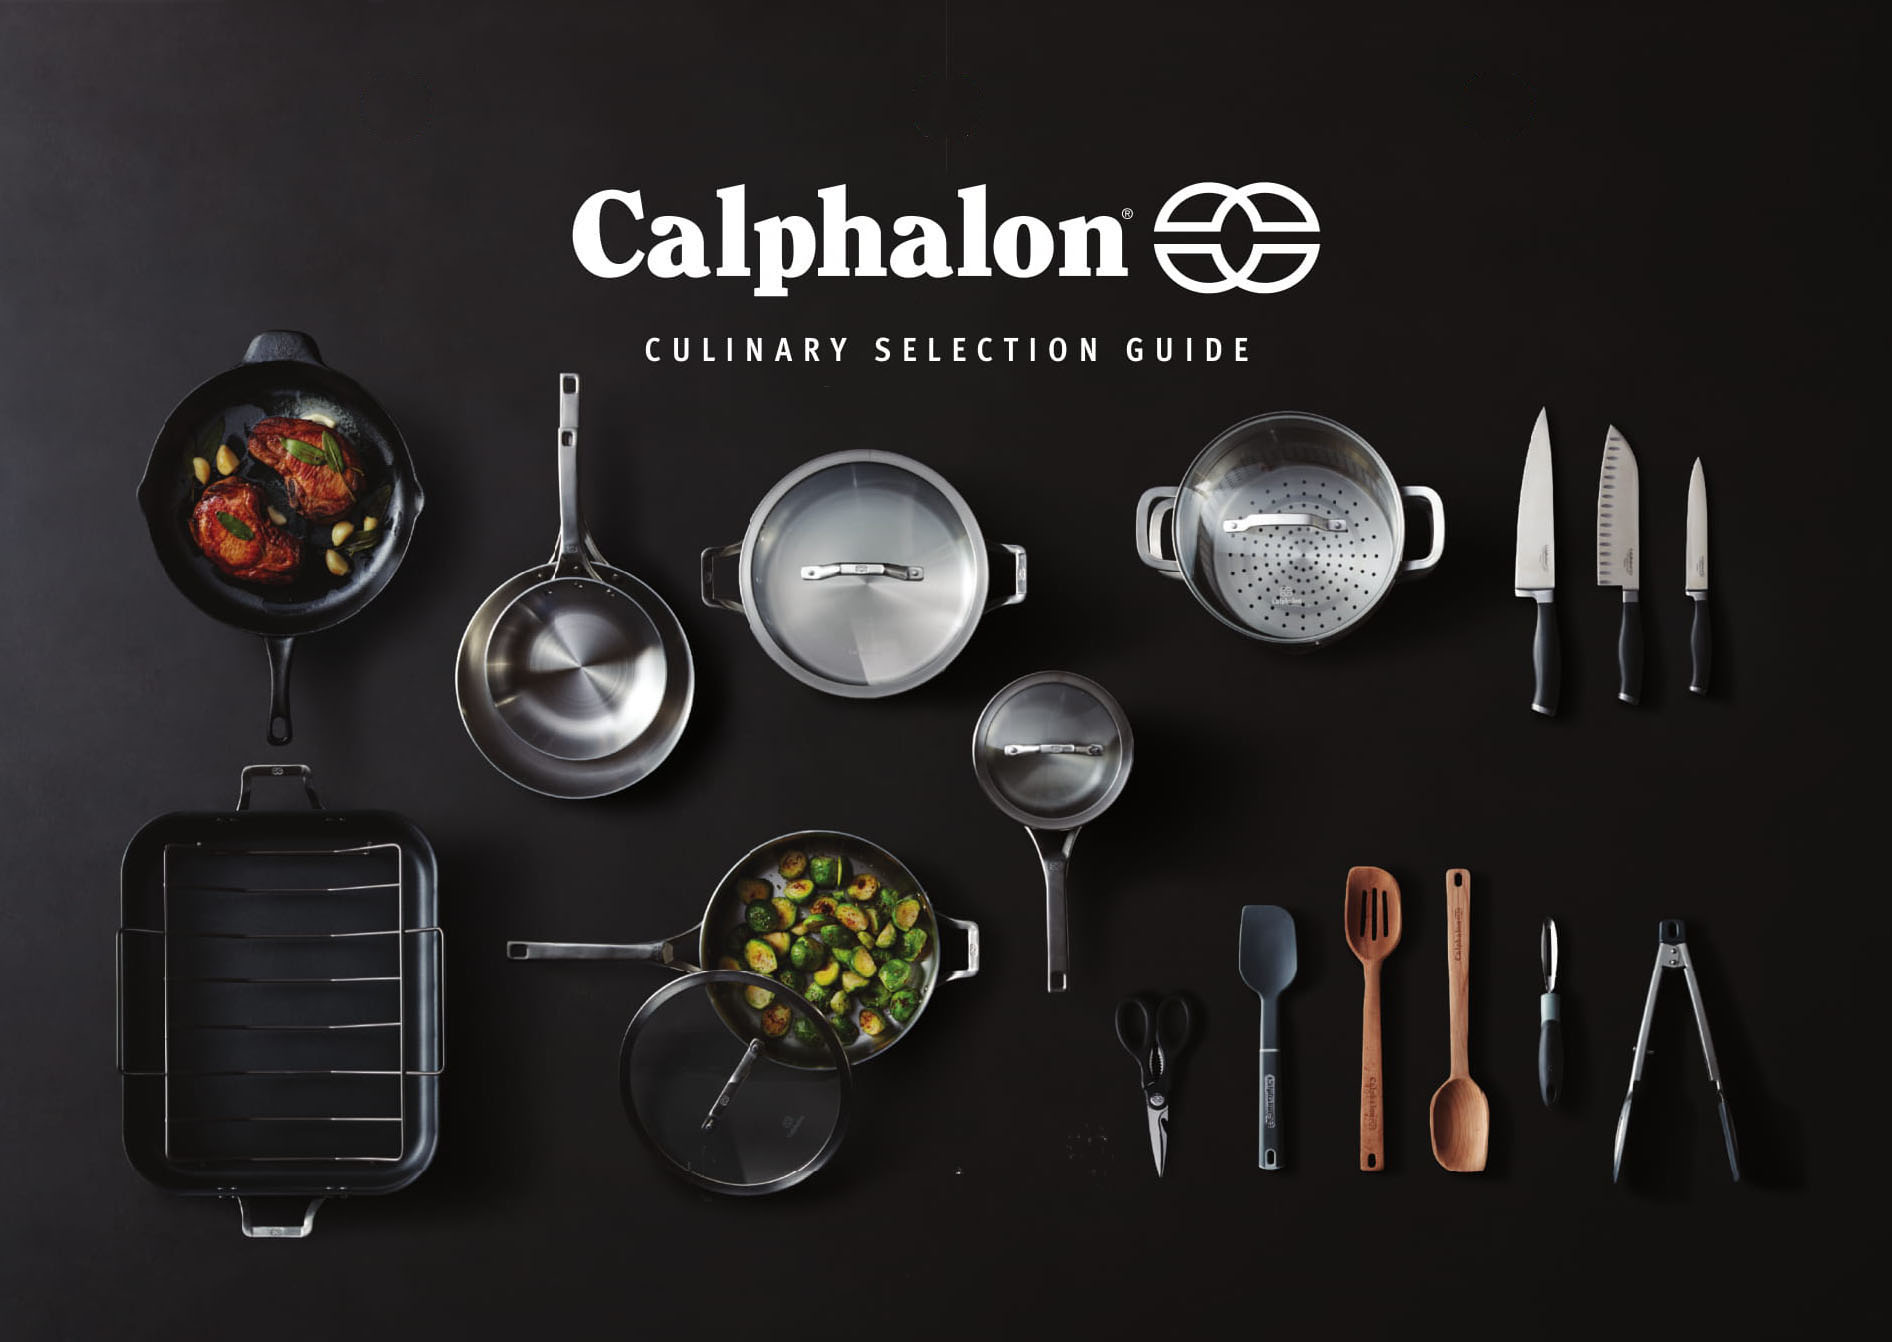 Calphalon - Print catalog flipbook